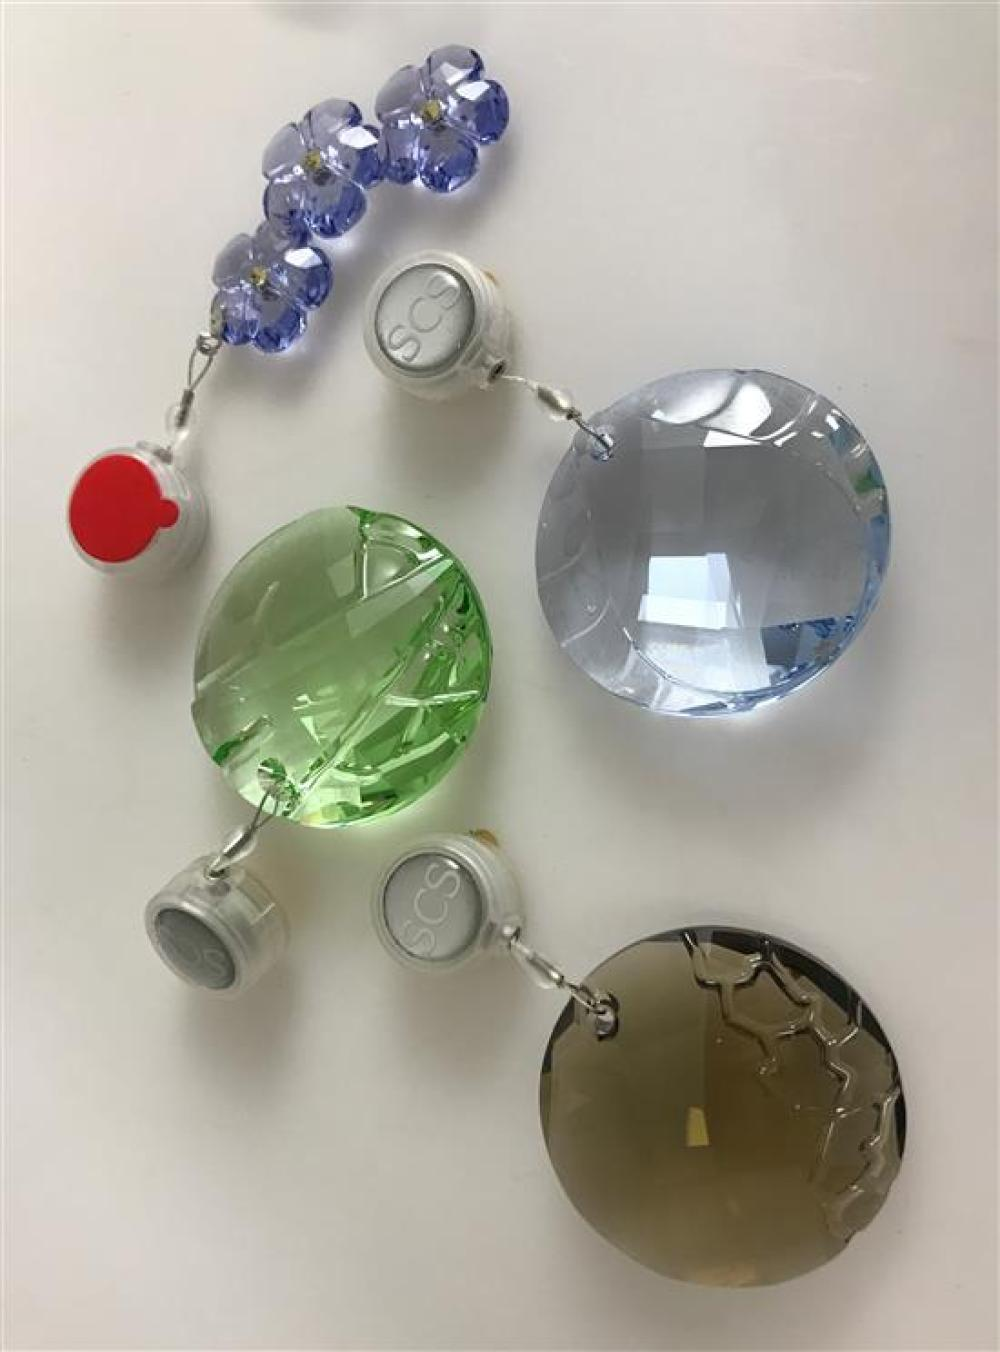 """4 SWAROVSKI CRYSTAL SUN CATCHERS IN BLUE, GREEN, AMETHYST AND SMOKEY GREY. CRYSTALS ARE 2."""" ORIGINAL BOXES INCLUDED"""